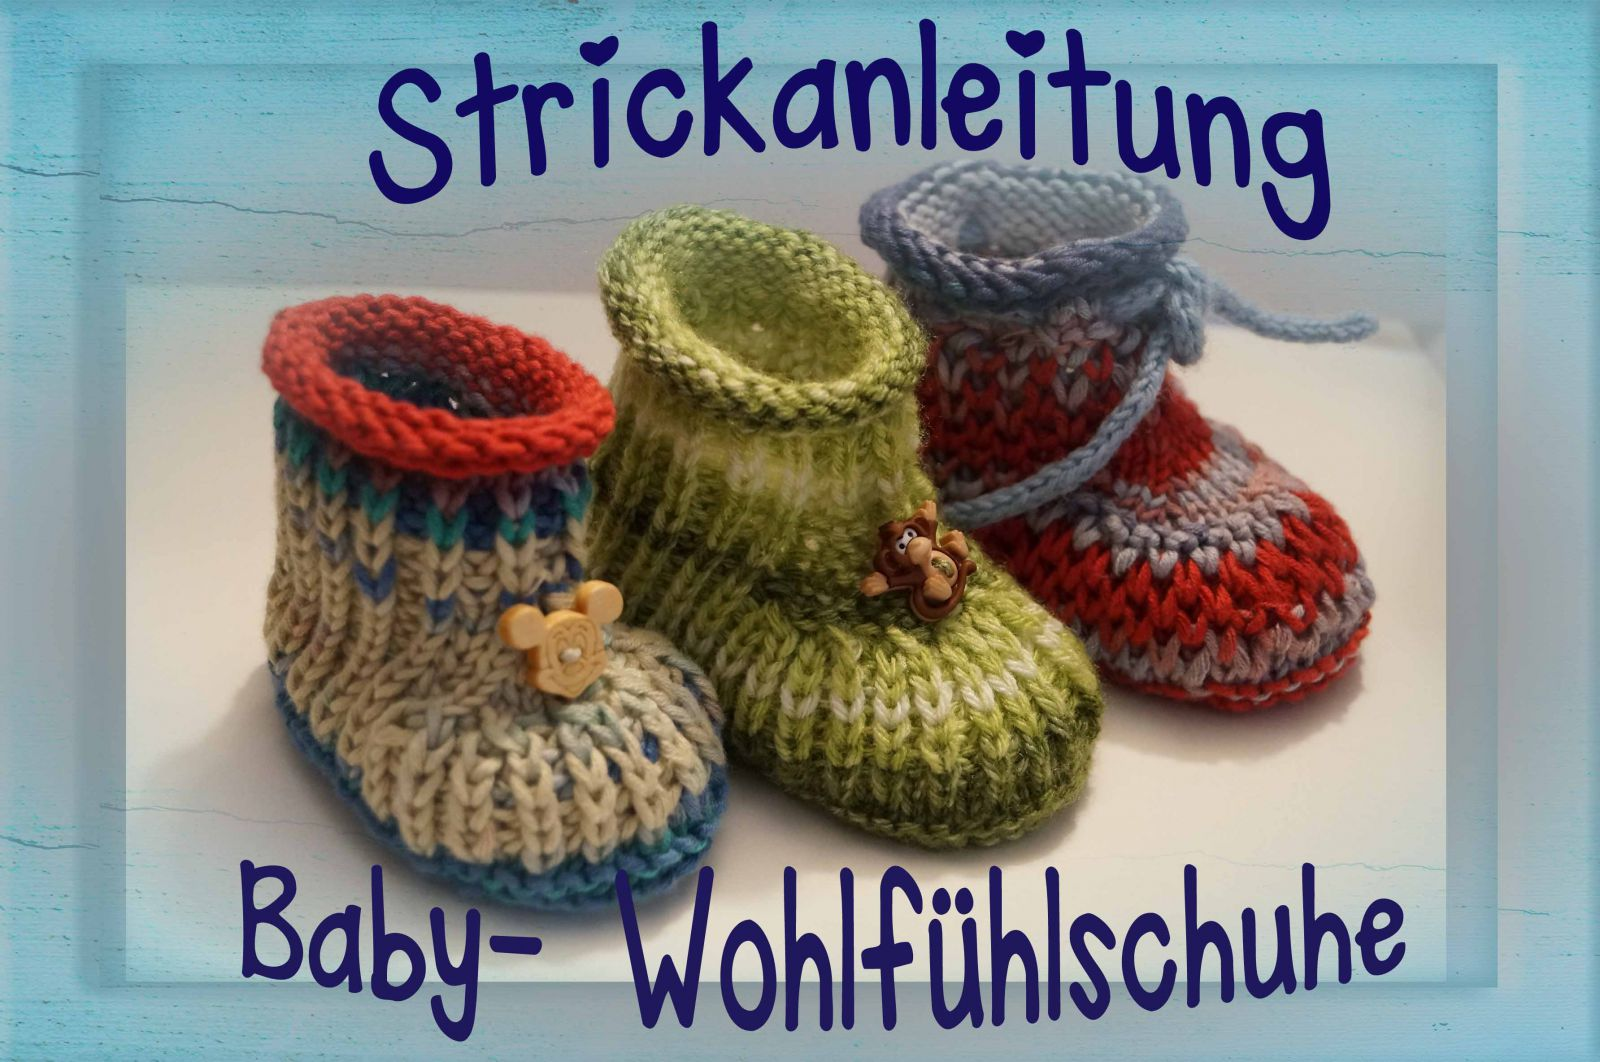 anleitungen f r niedliche babyschuhe gestrickt geh kelt. Black Bedroom Furniture Sets. Home Design Ideas